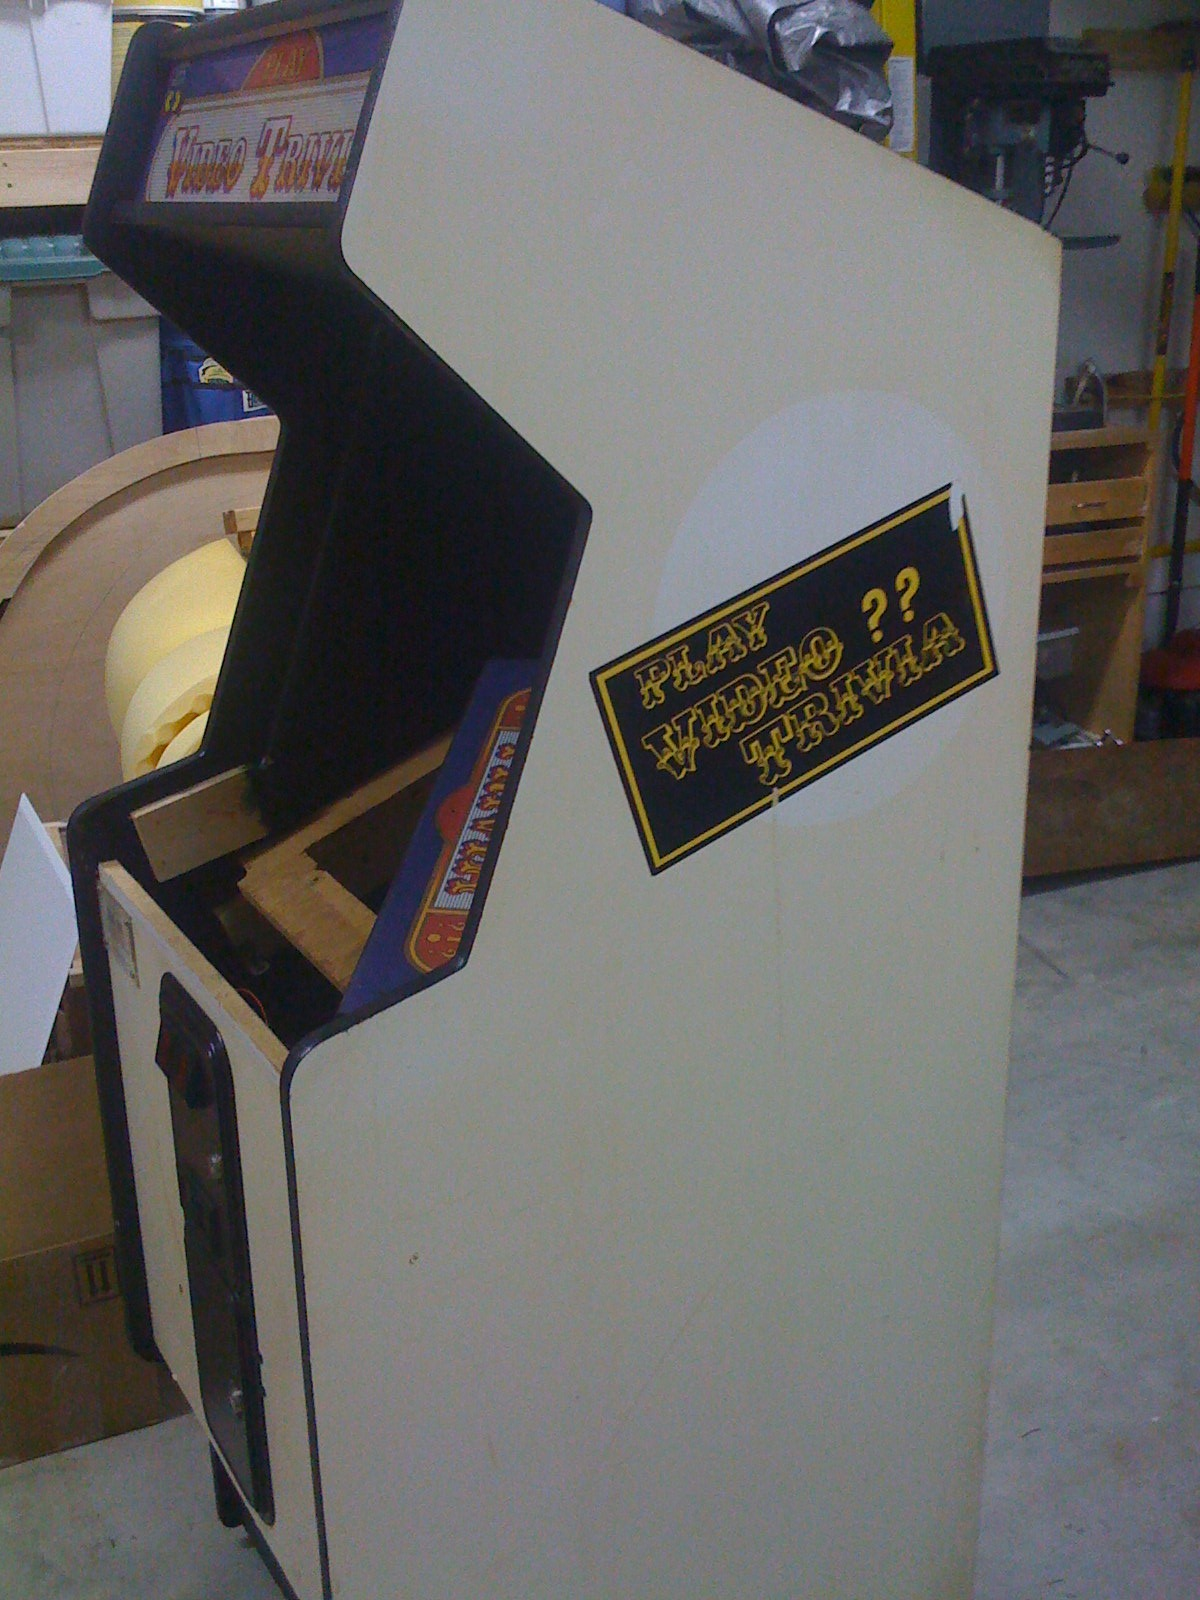 Arcade Cabinet Dimensions Building Your Own Arcade Cabinet For Geeks Part 1 The Cabinet